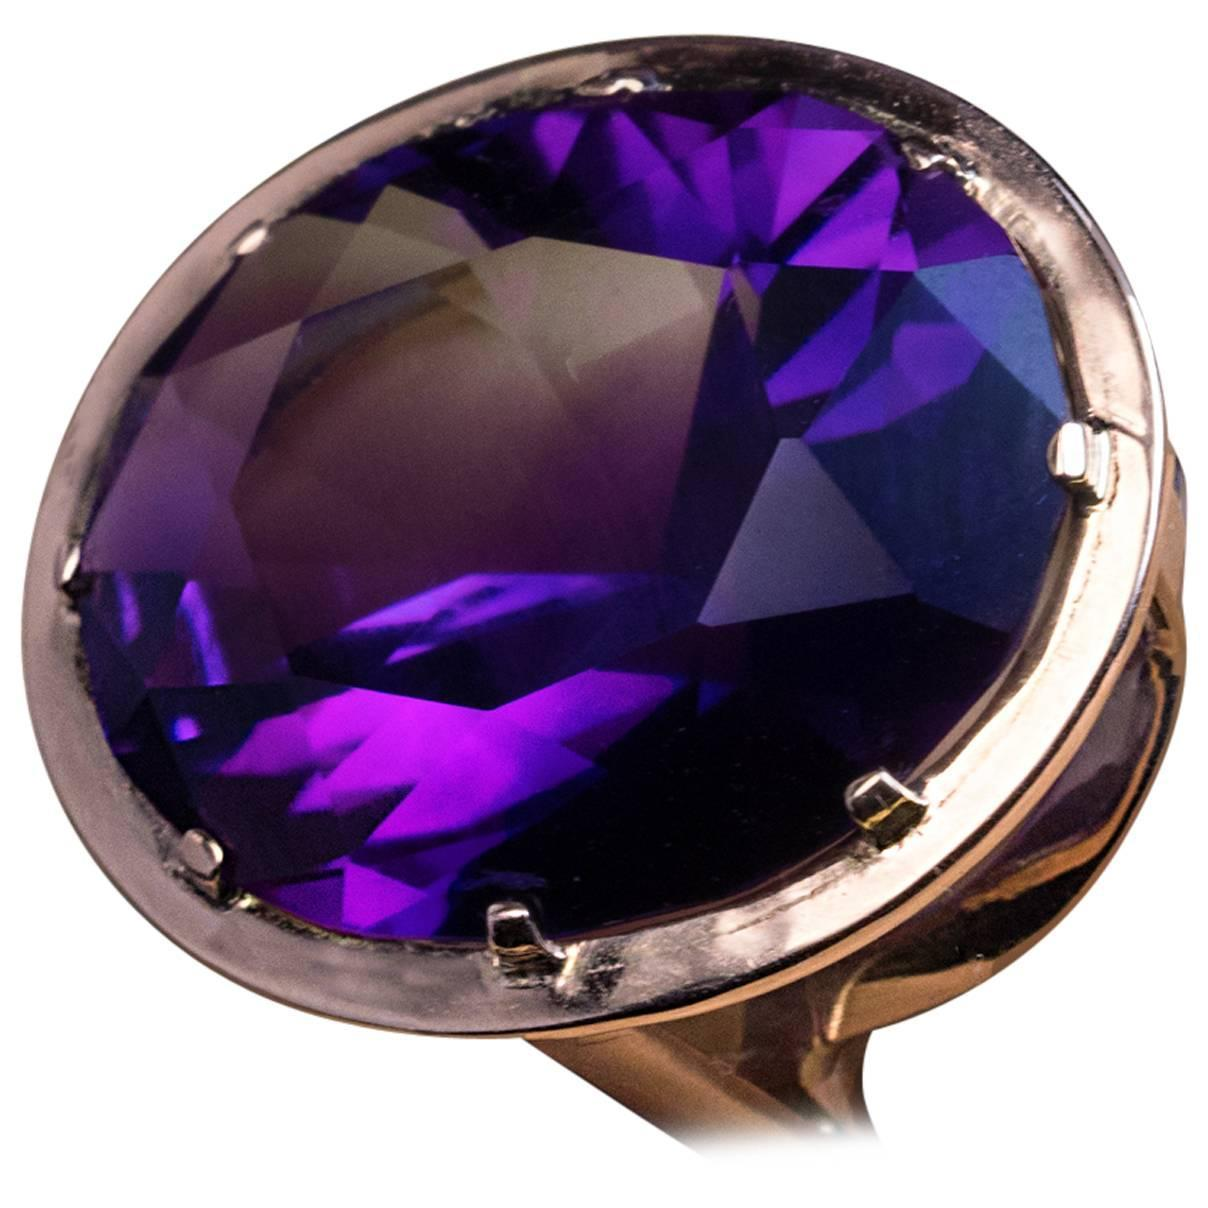 Siberia Platinum: 1960s Siberian Amethyst Gold Ring At 1stdibs